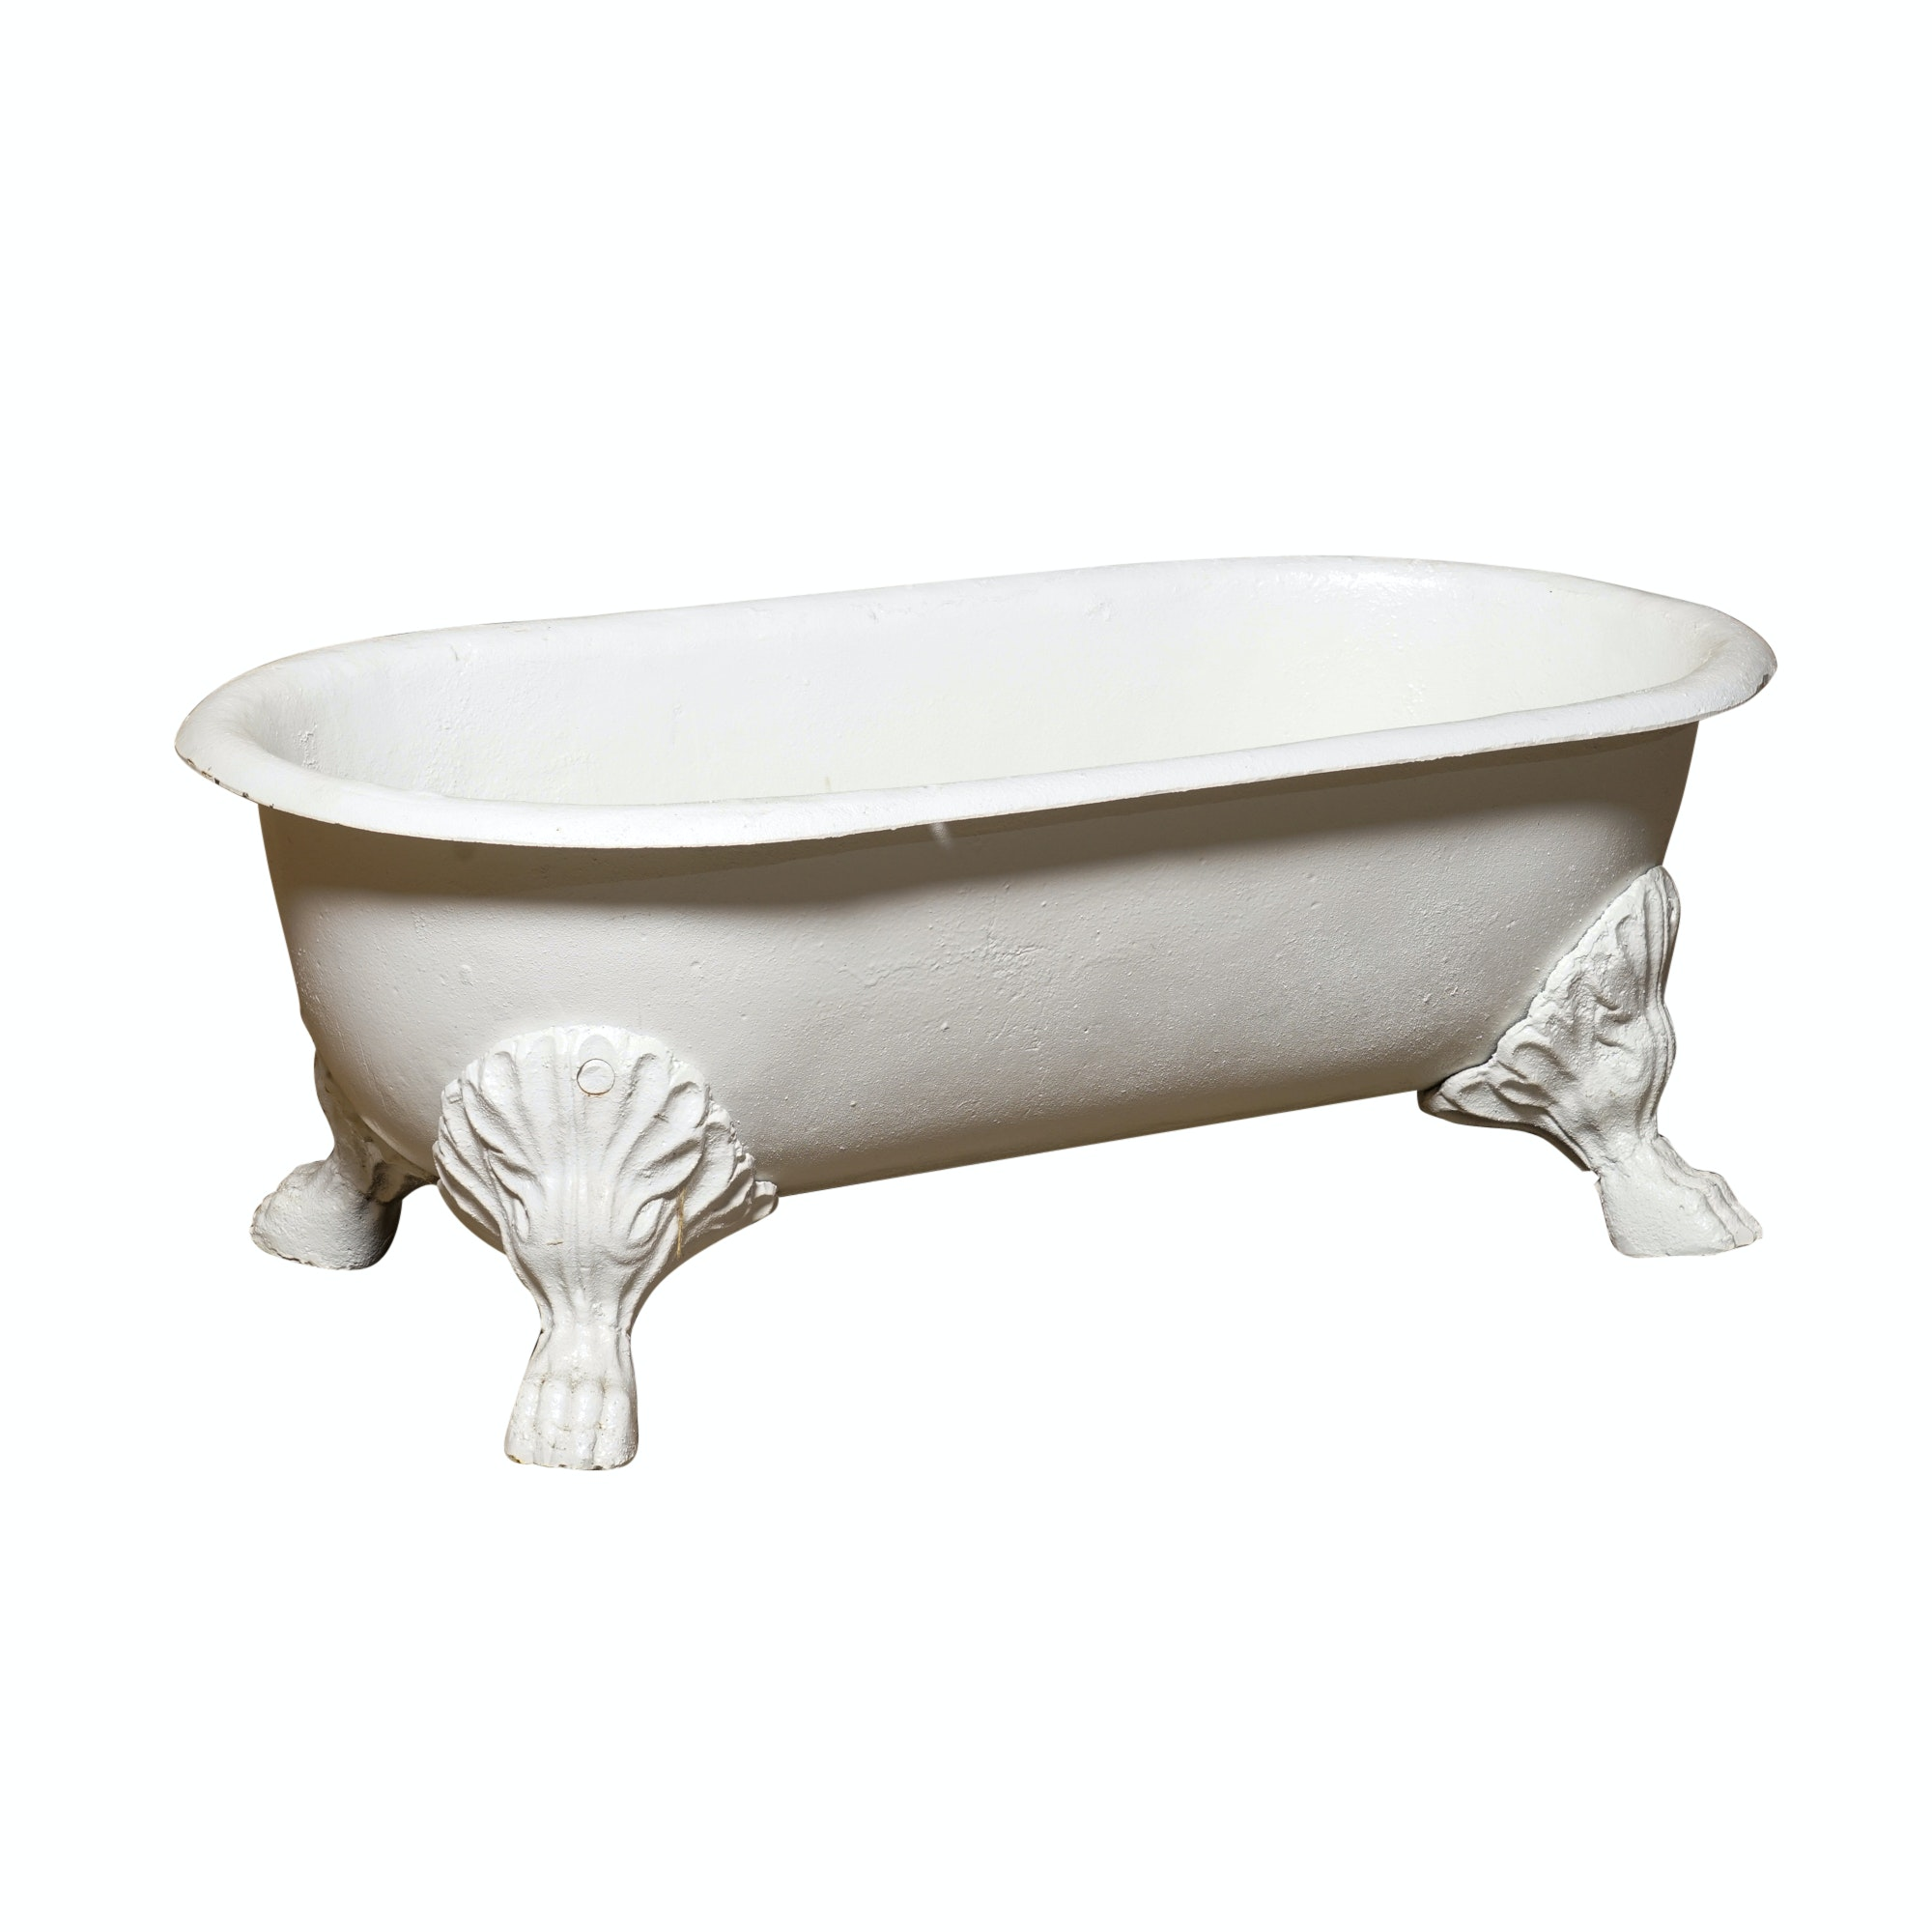 Painted Iron Miniature Clawfoot Bathtub Planter ...